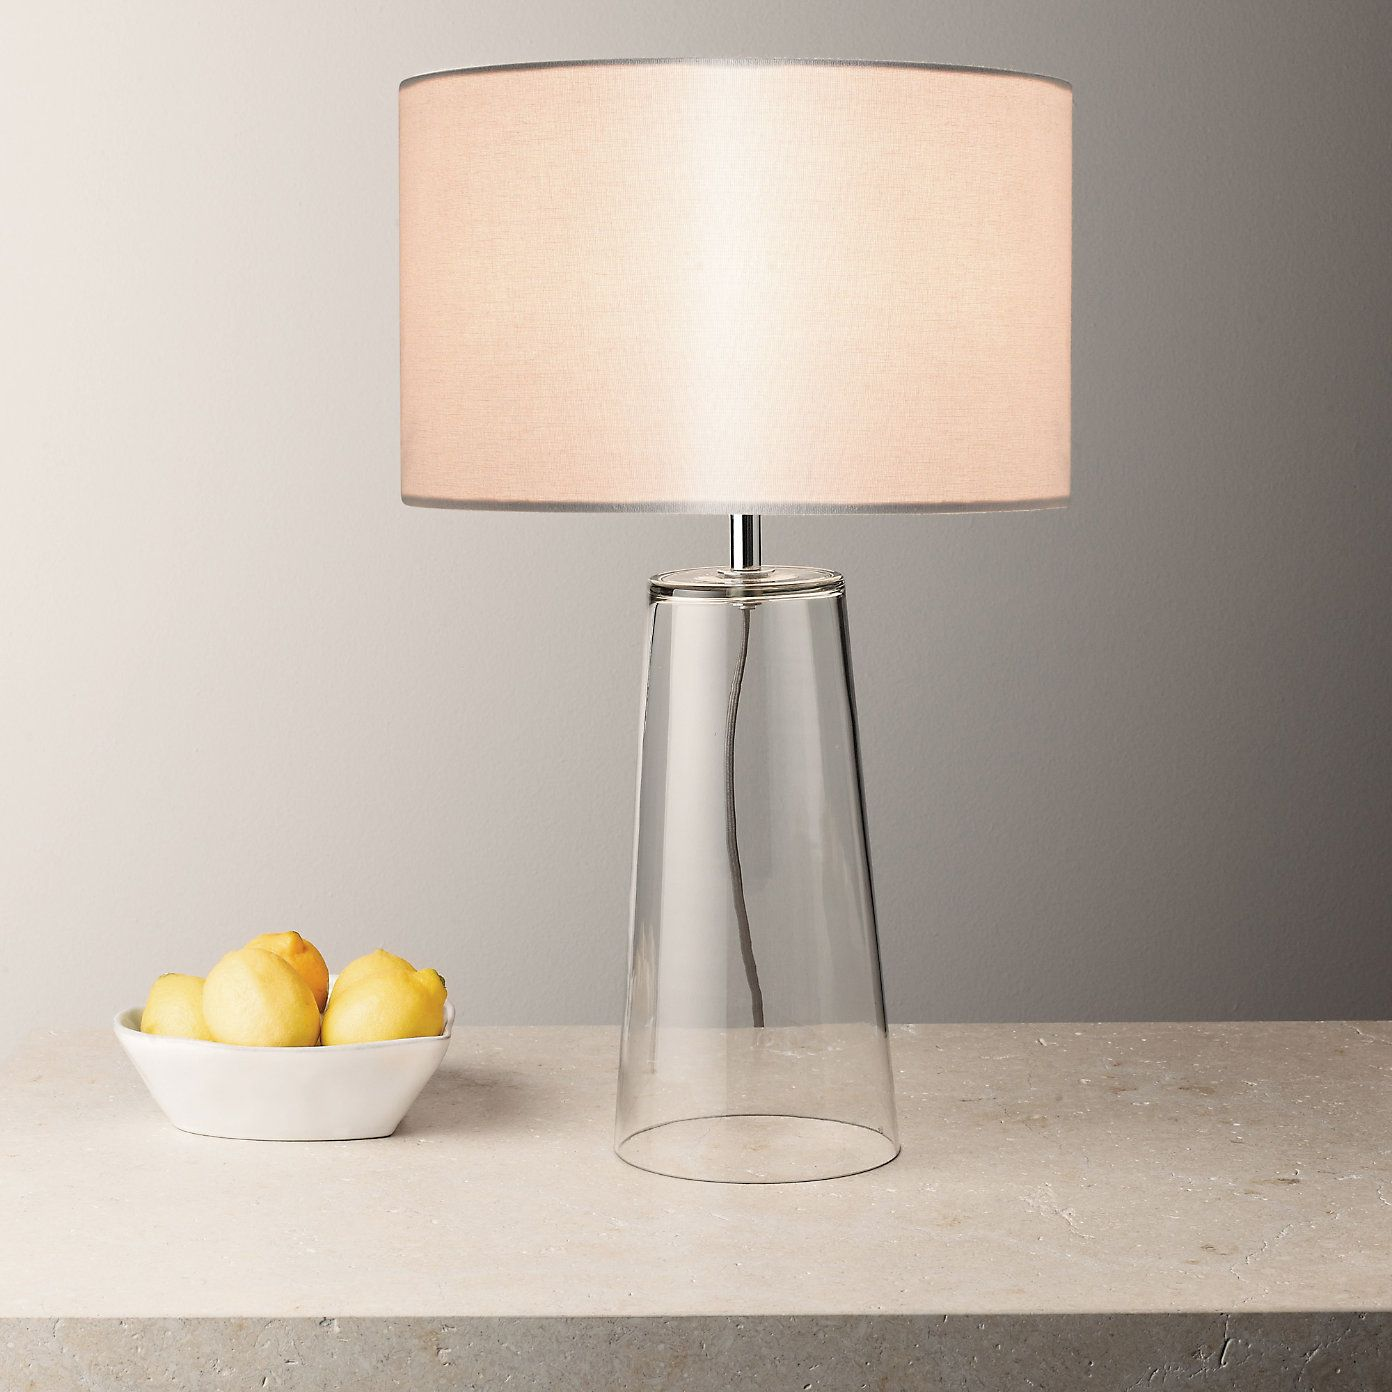 Bowery Table Lamp Table Lamps The White Company Table Lamp